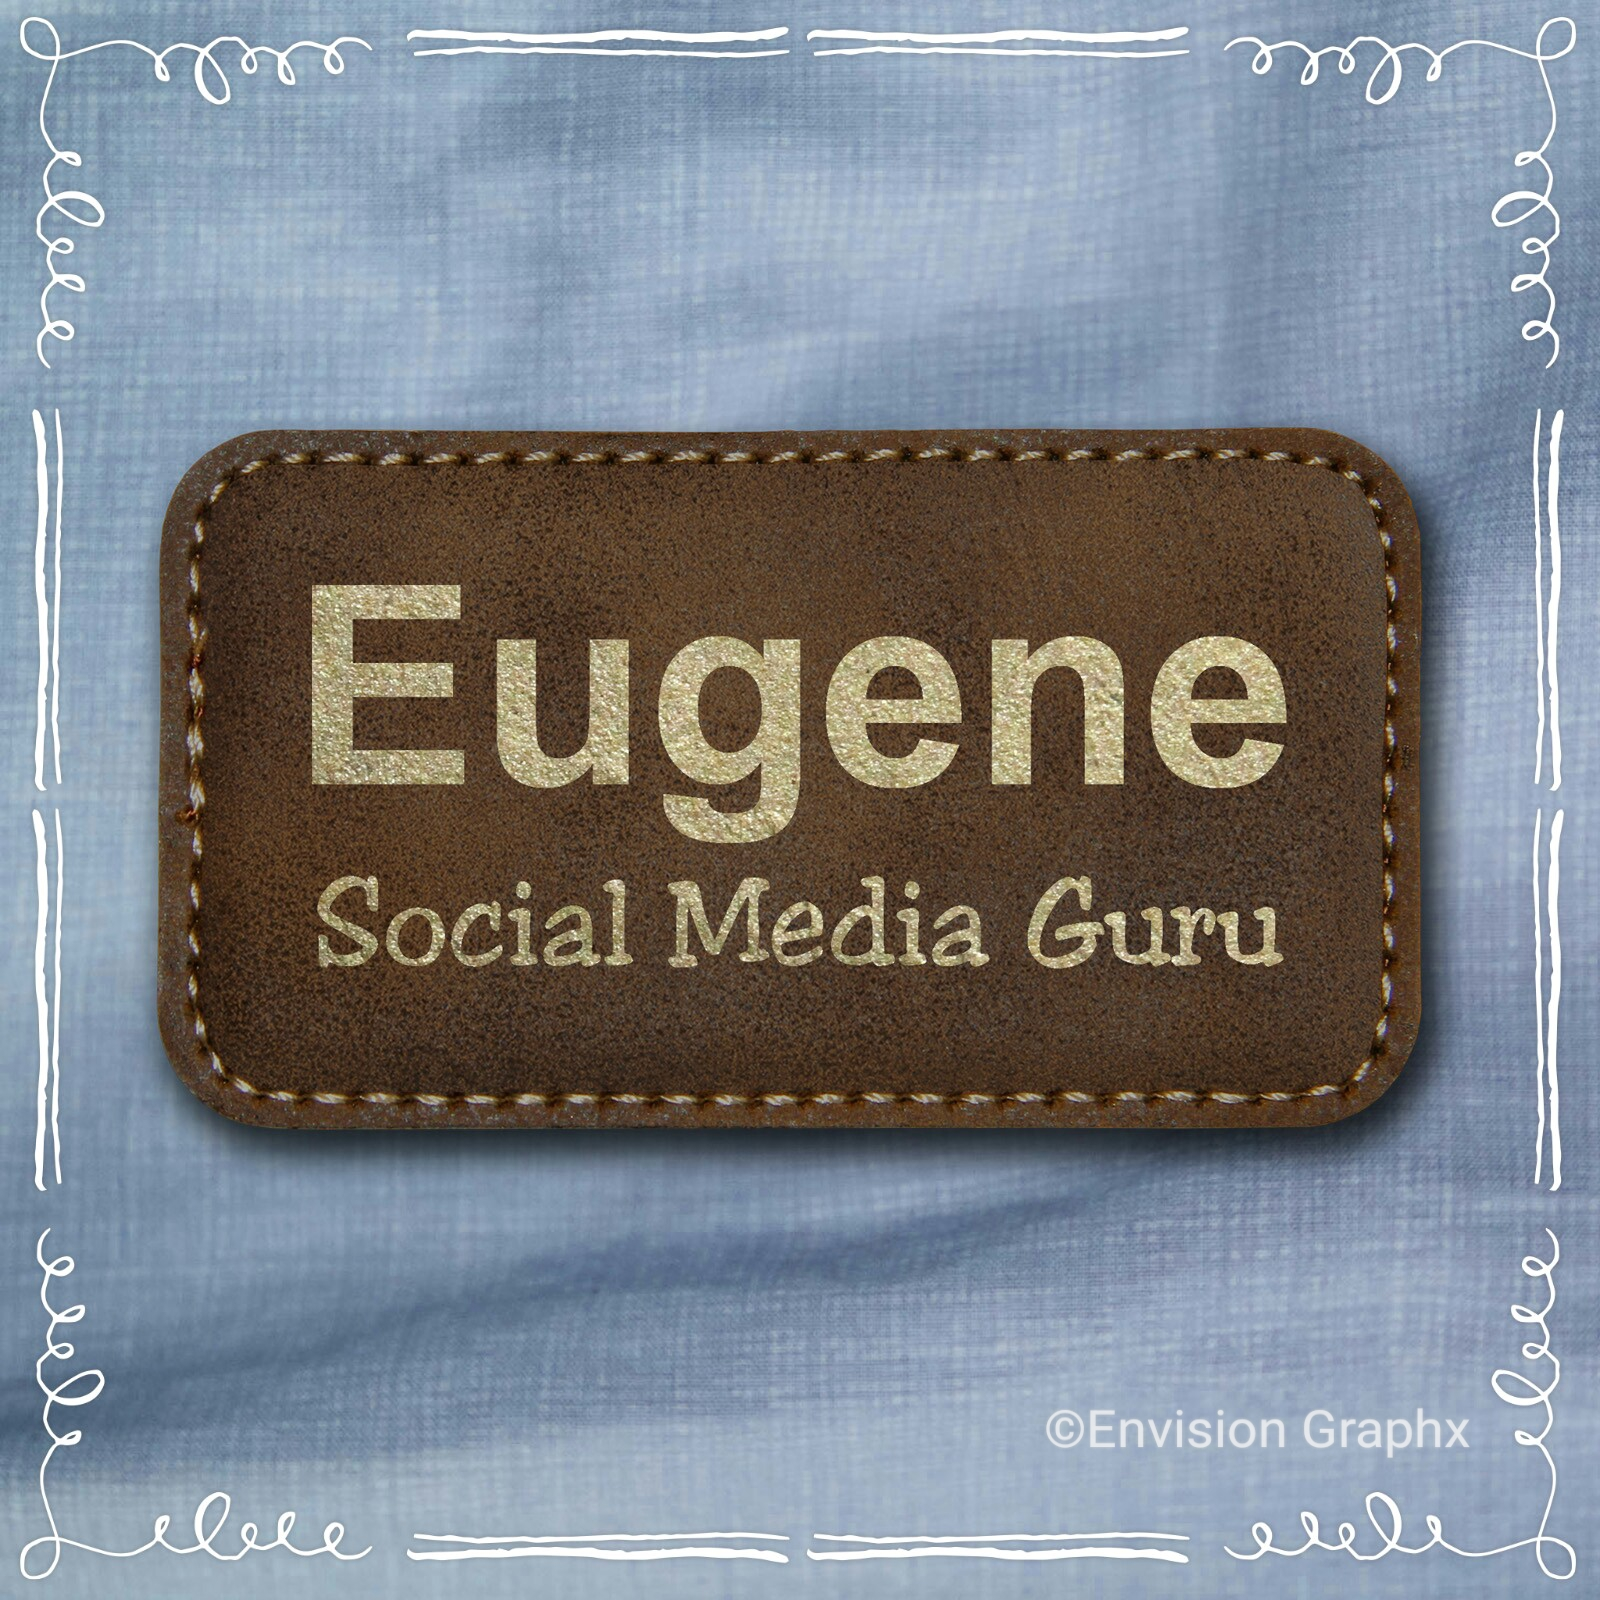 LEATHERETTE RUSTICO NAME BADGE - Leatherette Rustic Badge